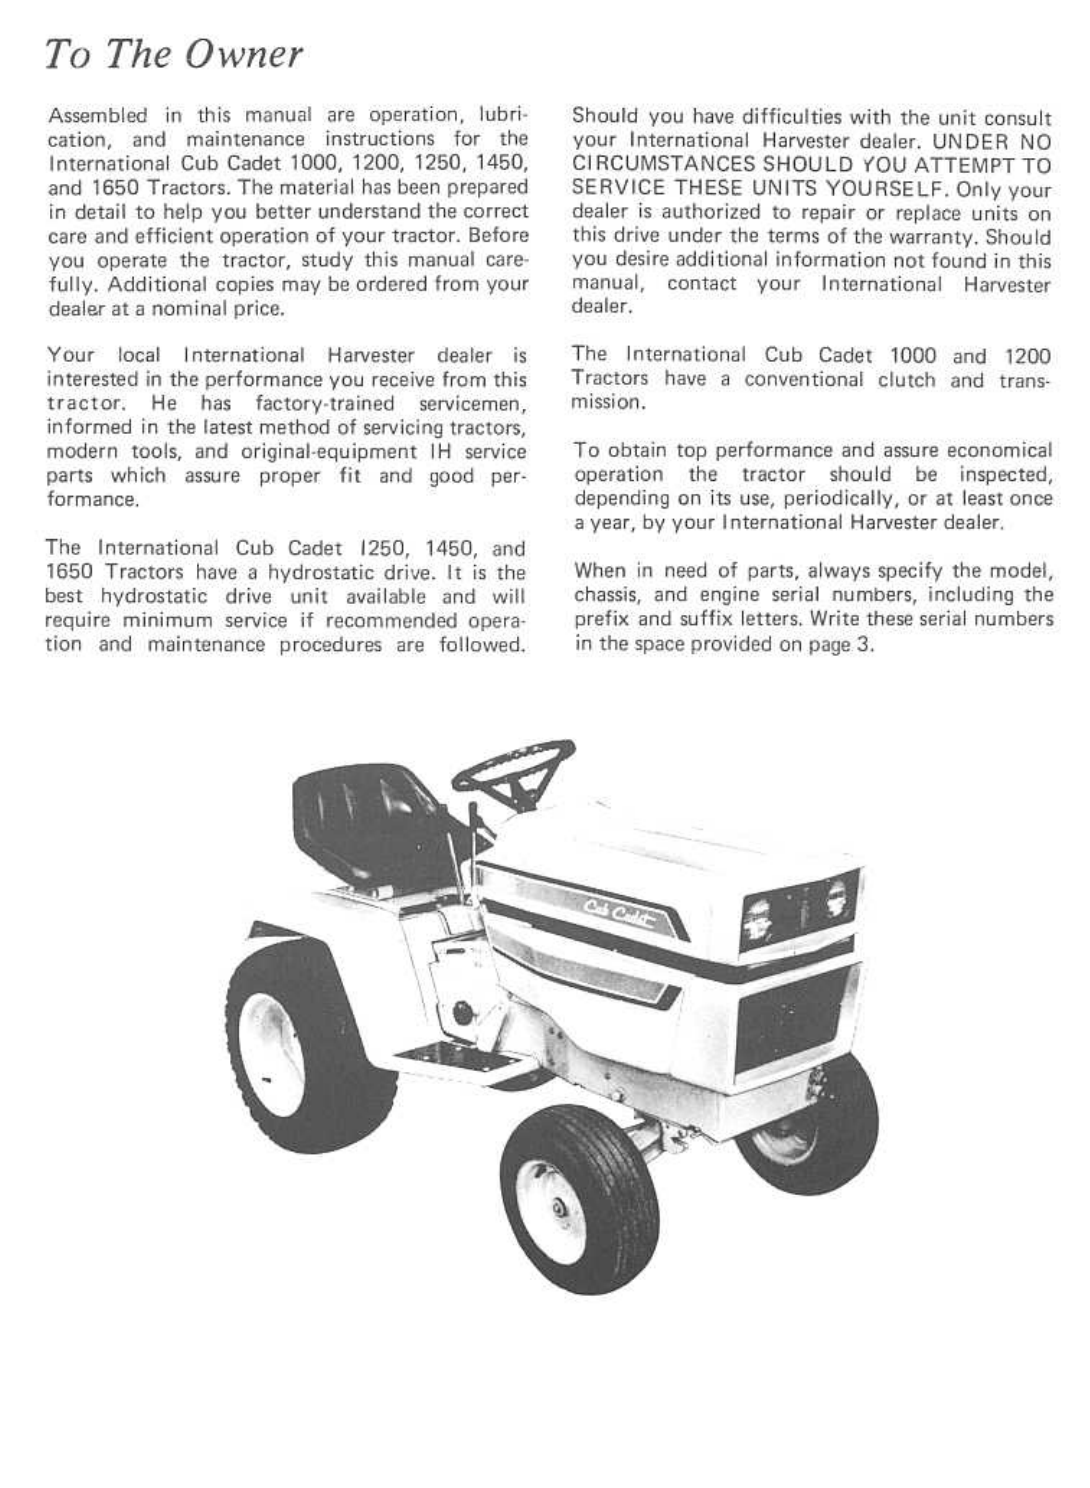 Cub Cadet 1450 Manual Schematic Page Of Lawn Mower User Guide 1090x1488